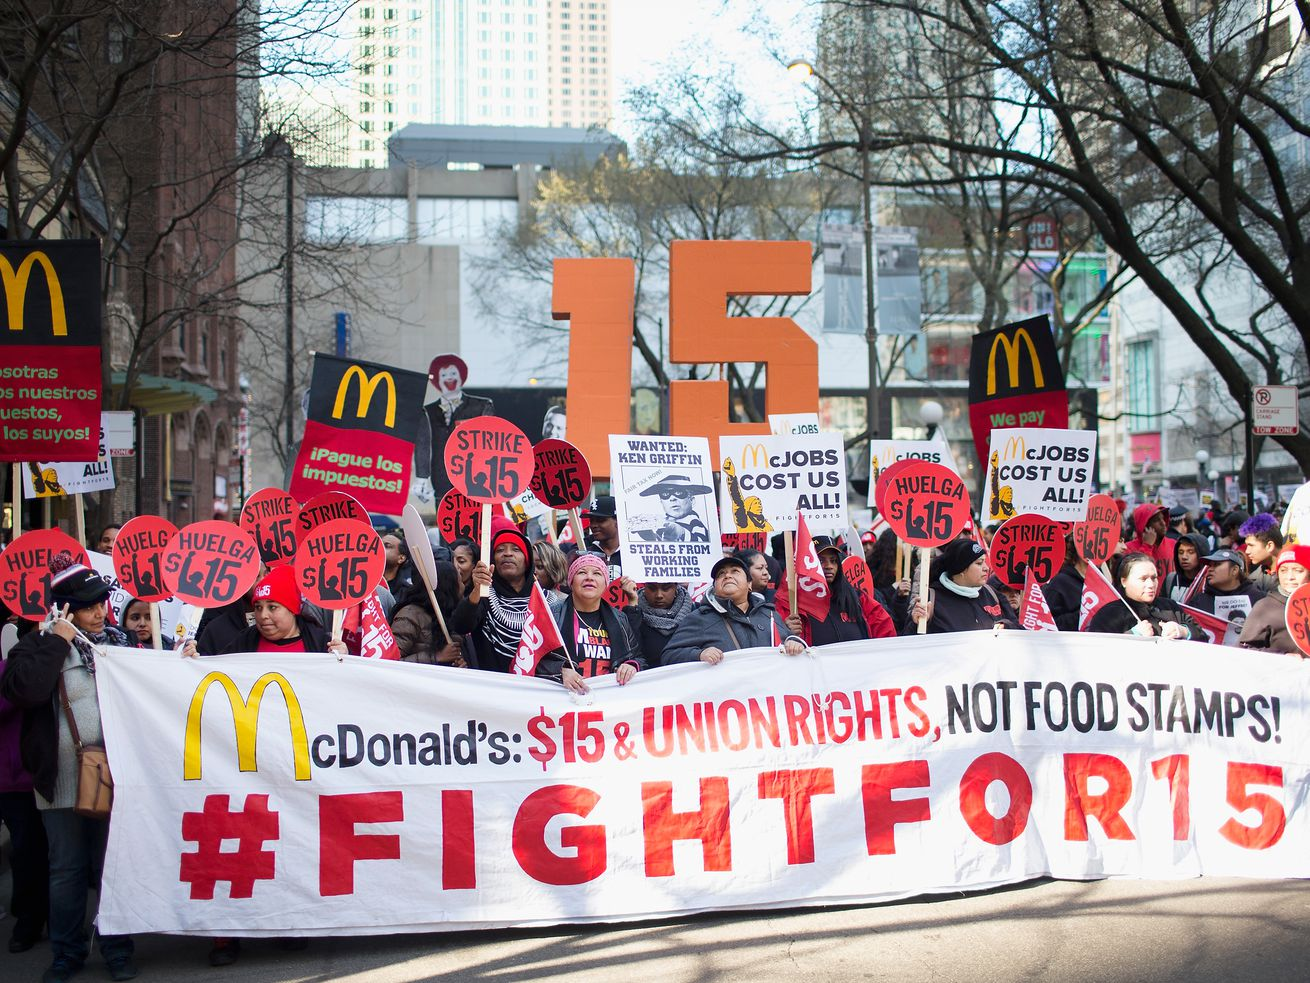 McDonald's workers hold a Fight for 15 banner.